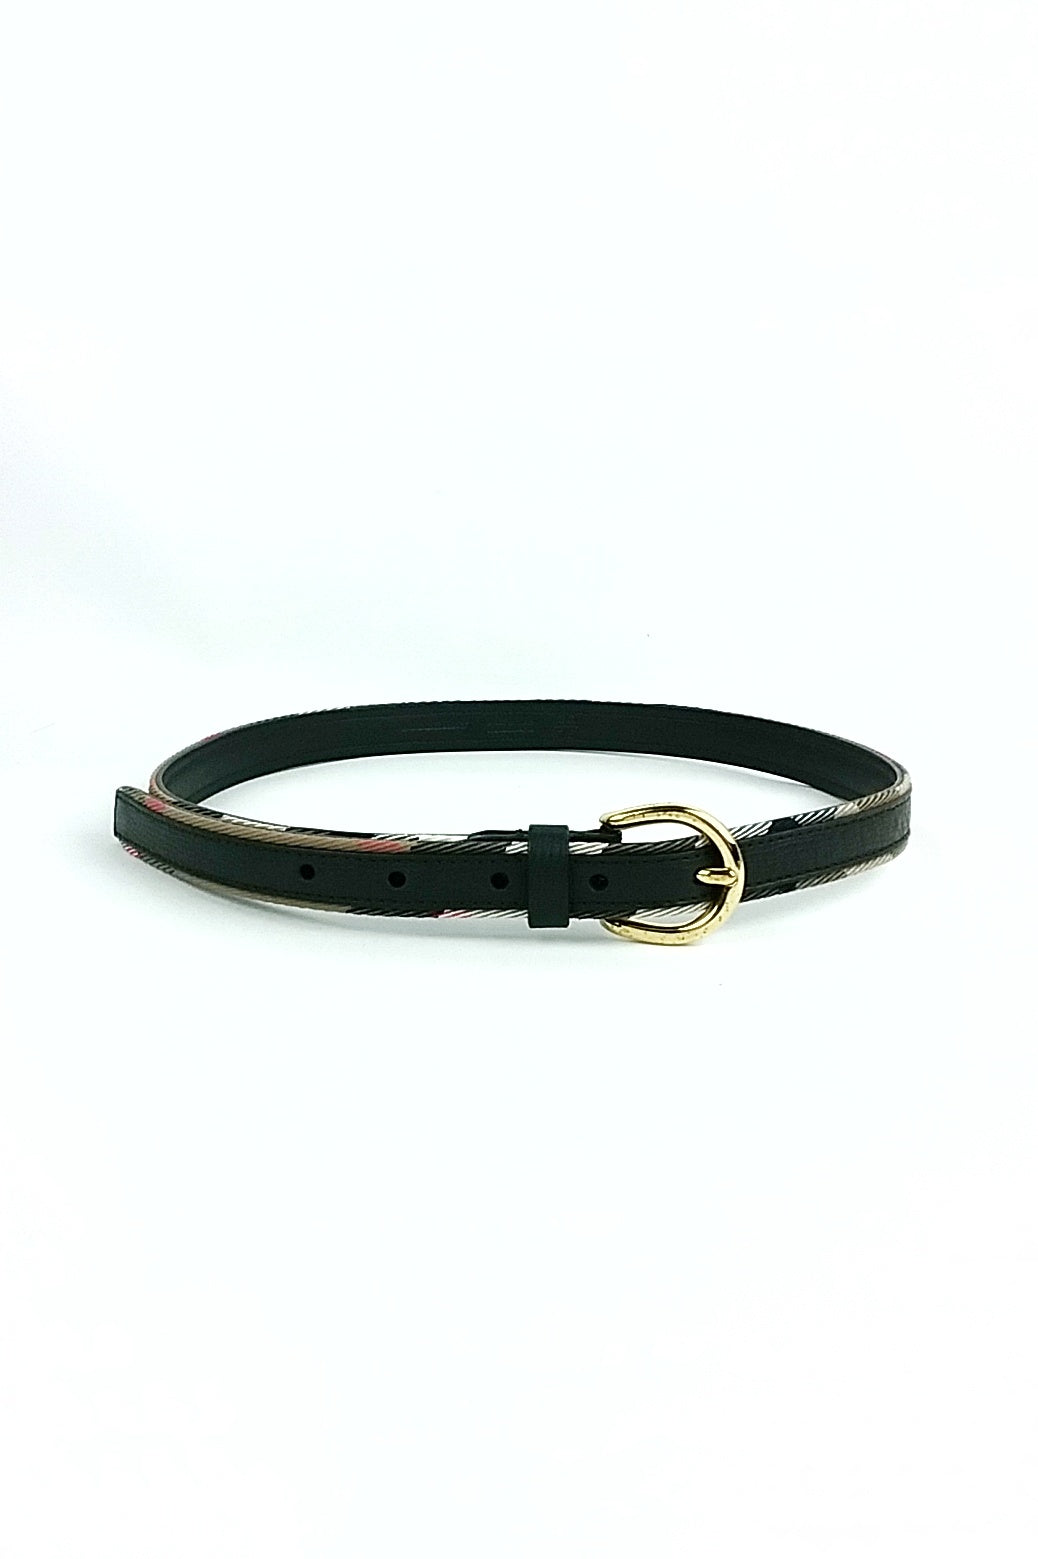 Black Pebbled Leather Belt with Smoke Check Trim